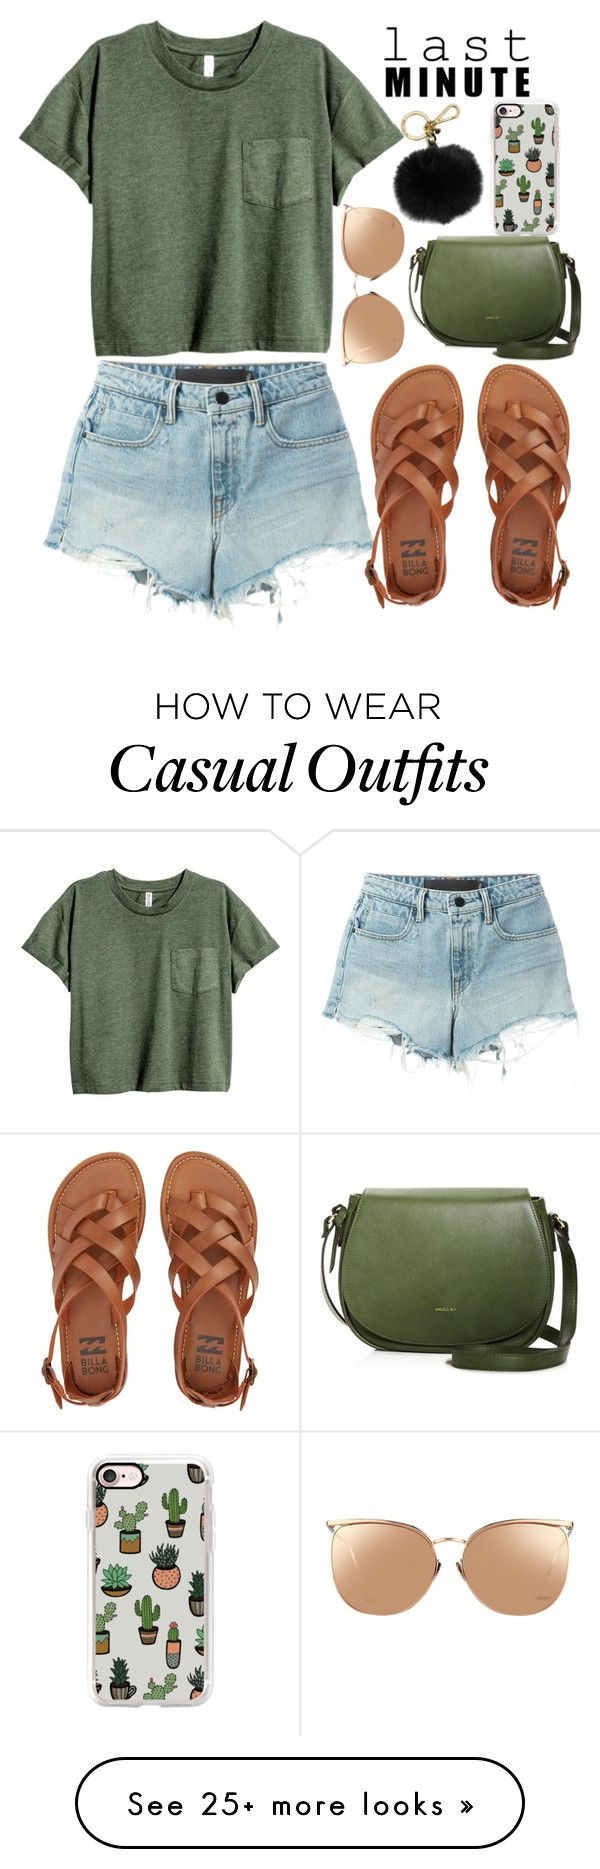 """so casual day!"" by feerubal on Polyvore featuring T By Alexander Wang, Billabong, Linda Farrow, Casetify and MICHAEL Michael Kors"